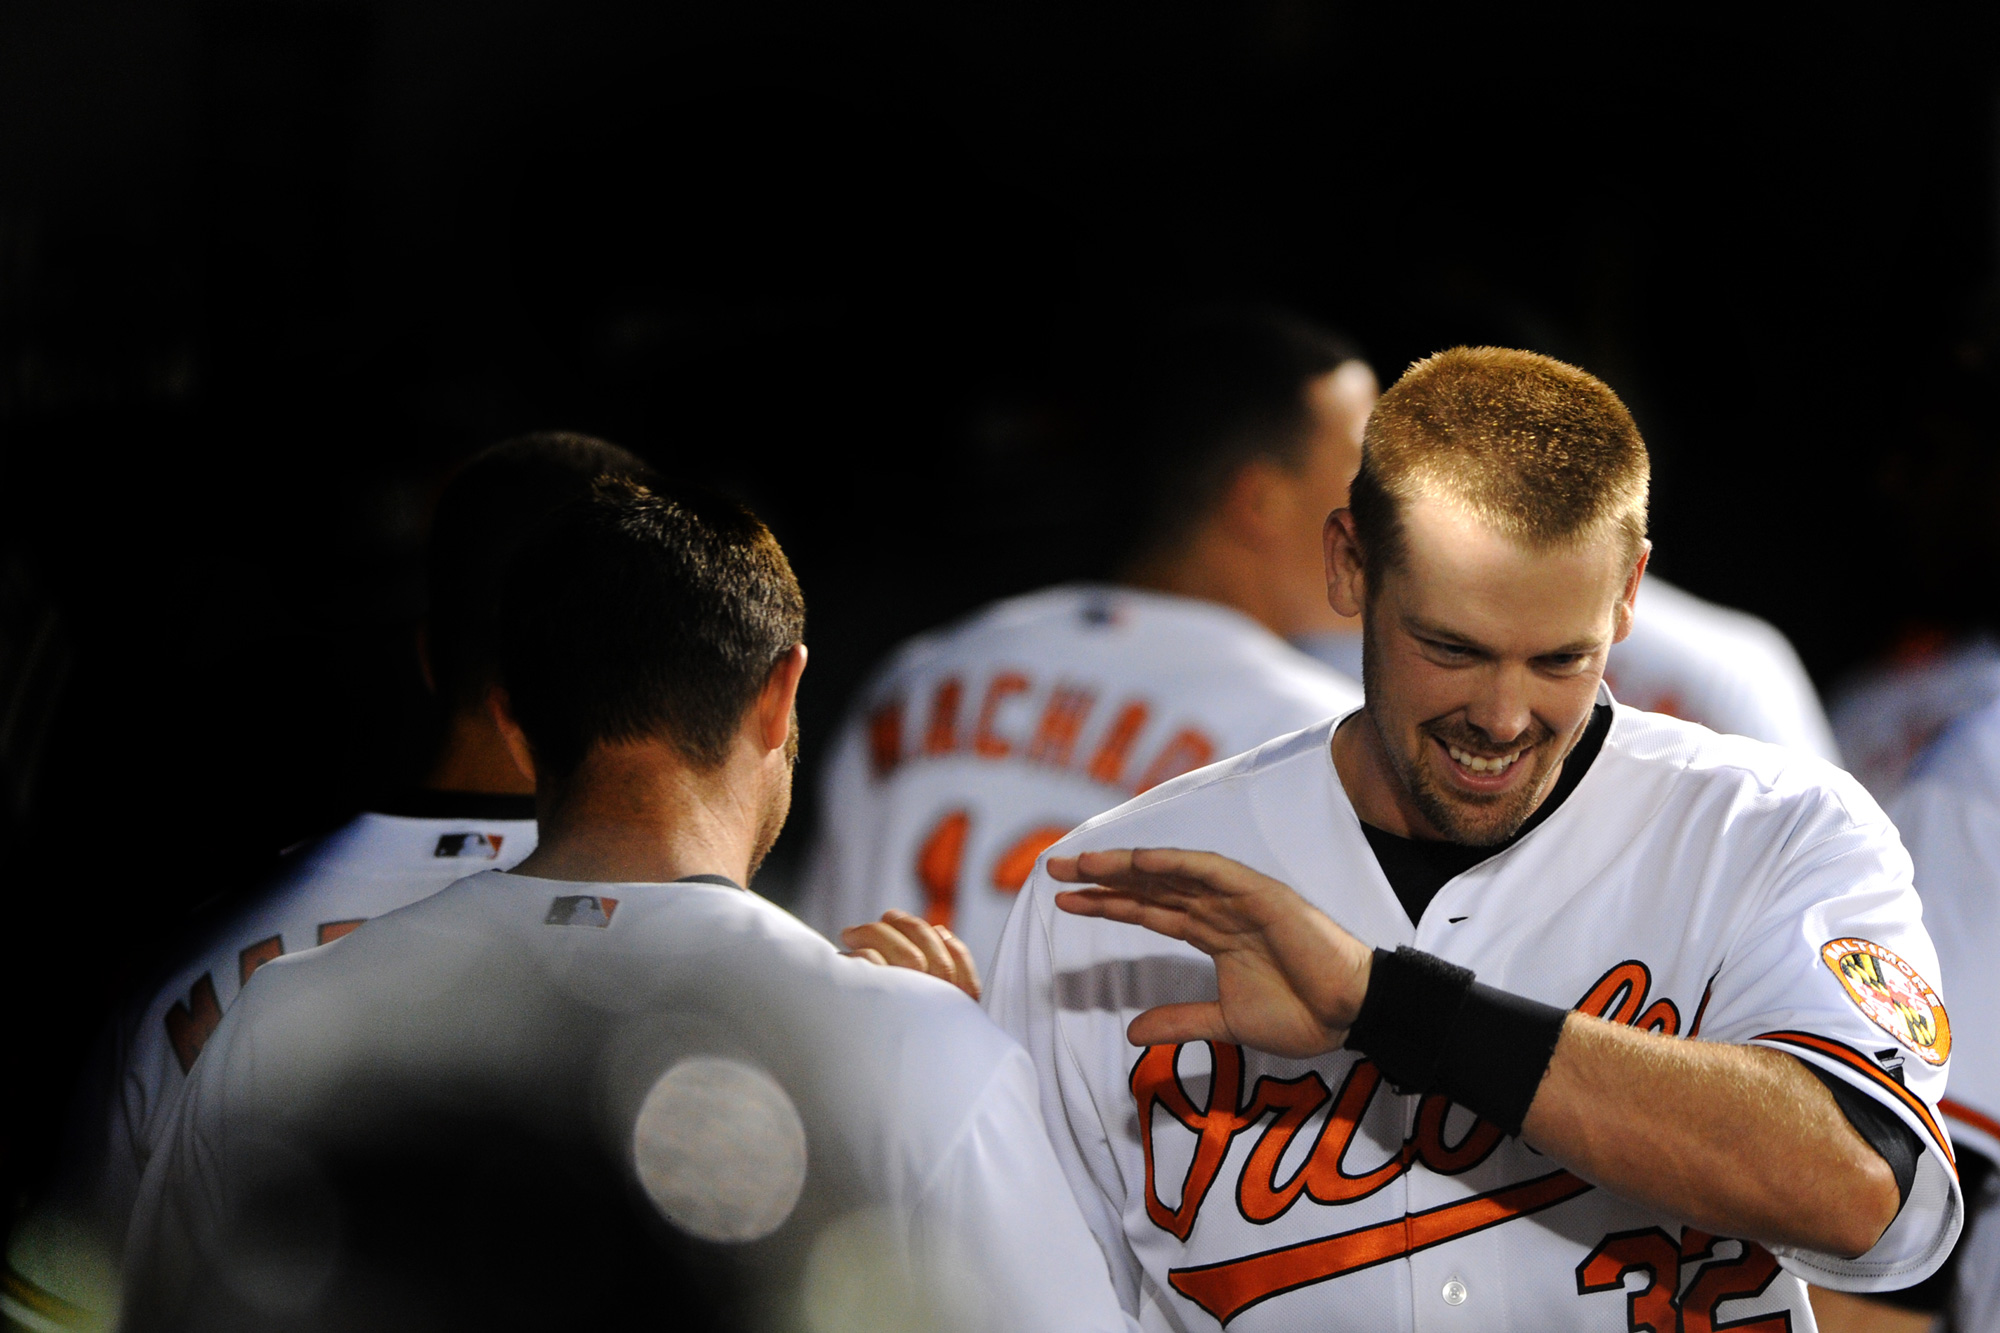 Baltimore Orioles catcher Matt Wieters celebrates after hitting a home run in the 10th inning of a home game on April 8, 2013 against the Tampa Bay Rays at Oriole Park at Camden Yards in Balitmore, Md.